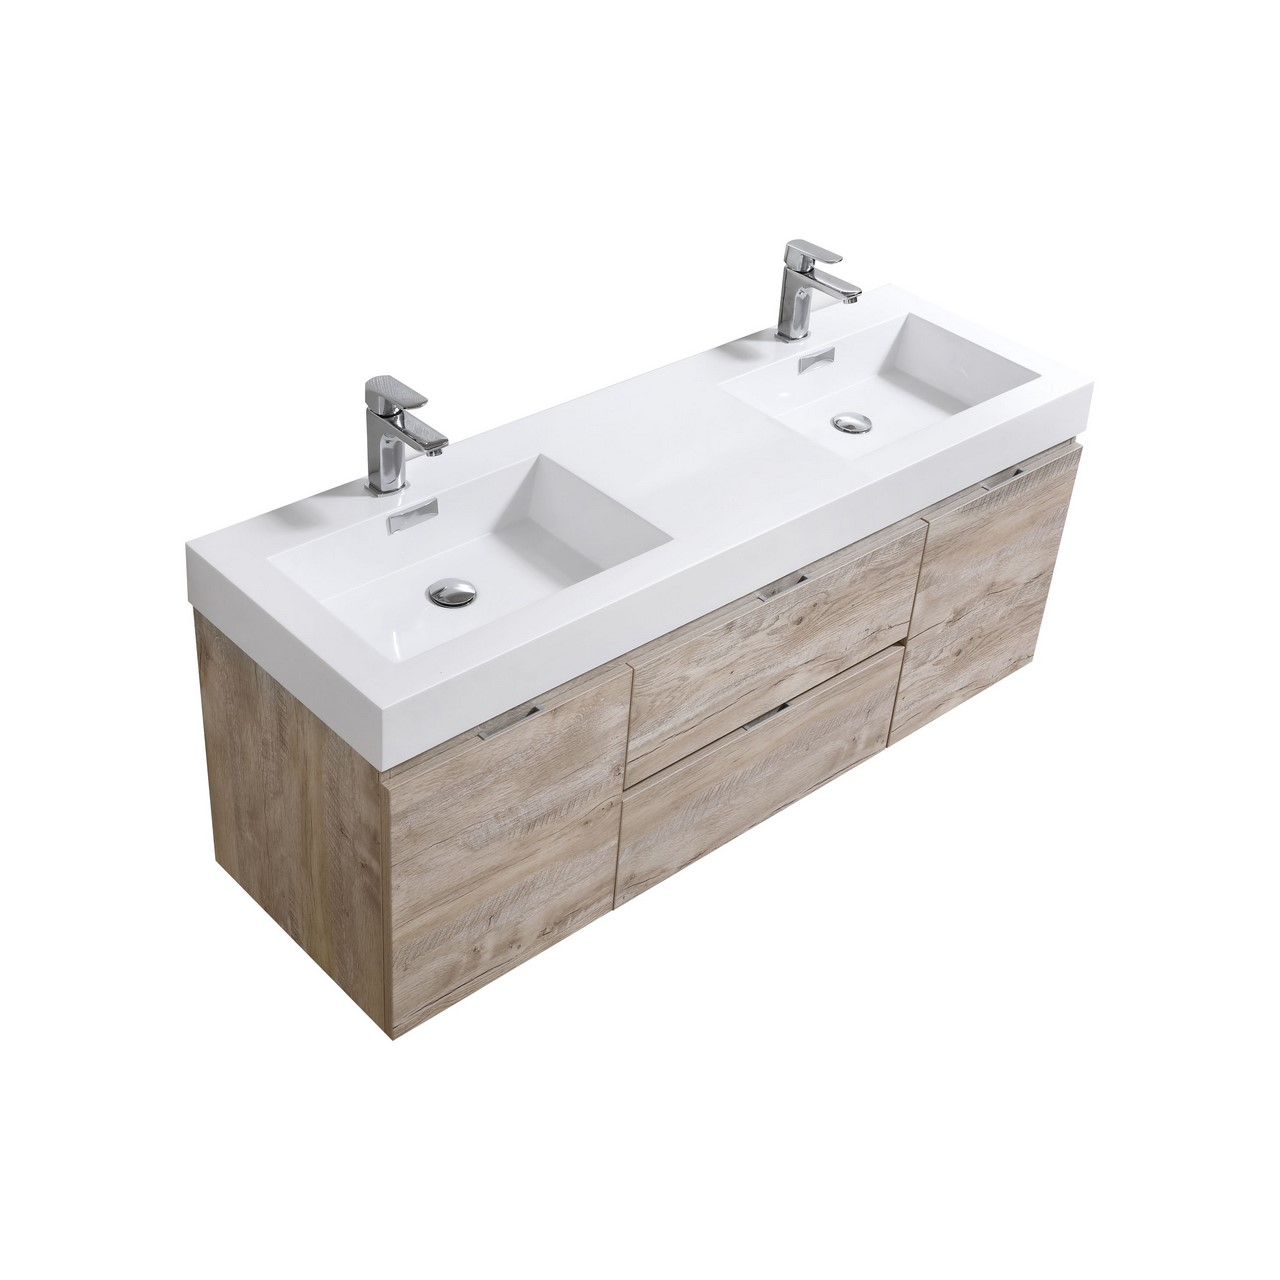 Bliss 60 Nature Wood Wall Mount Double Sink Modern